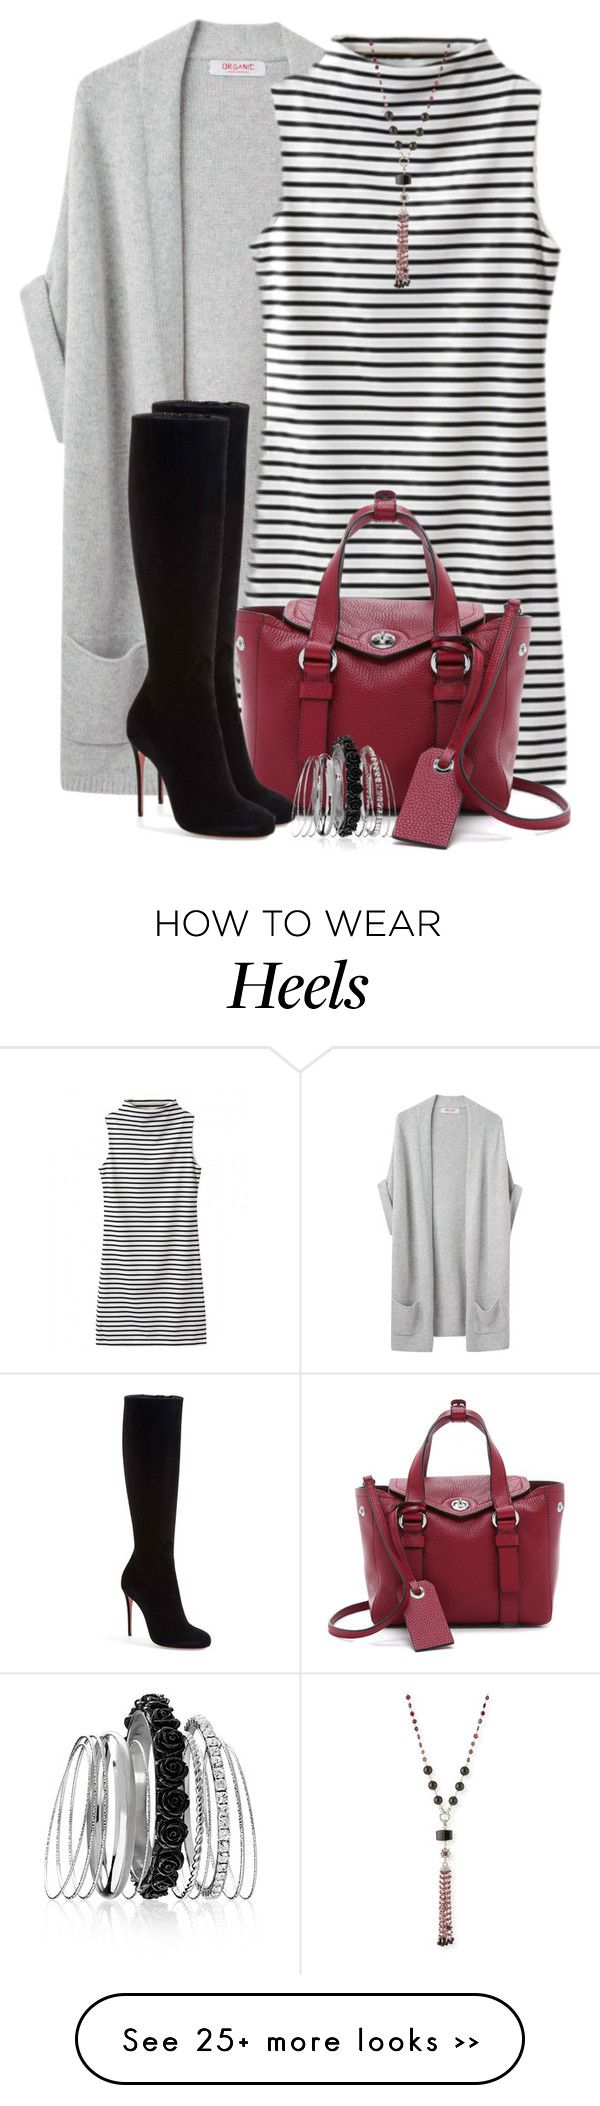 """Striped Dress & Boots"" by brendariley-1 on Polyvore featuring Organic by John Patrick, Marc by Marc Jacobs, Christian Louboutin, Stephen Dweck and Avenue"